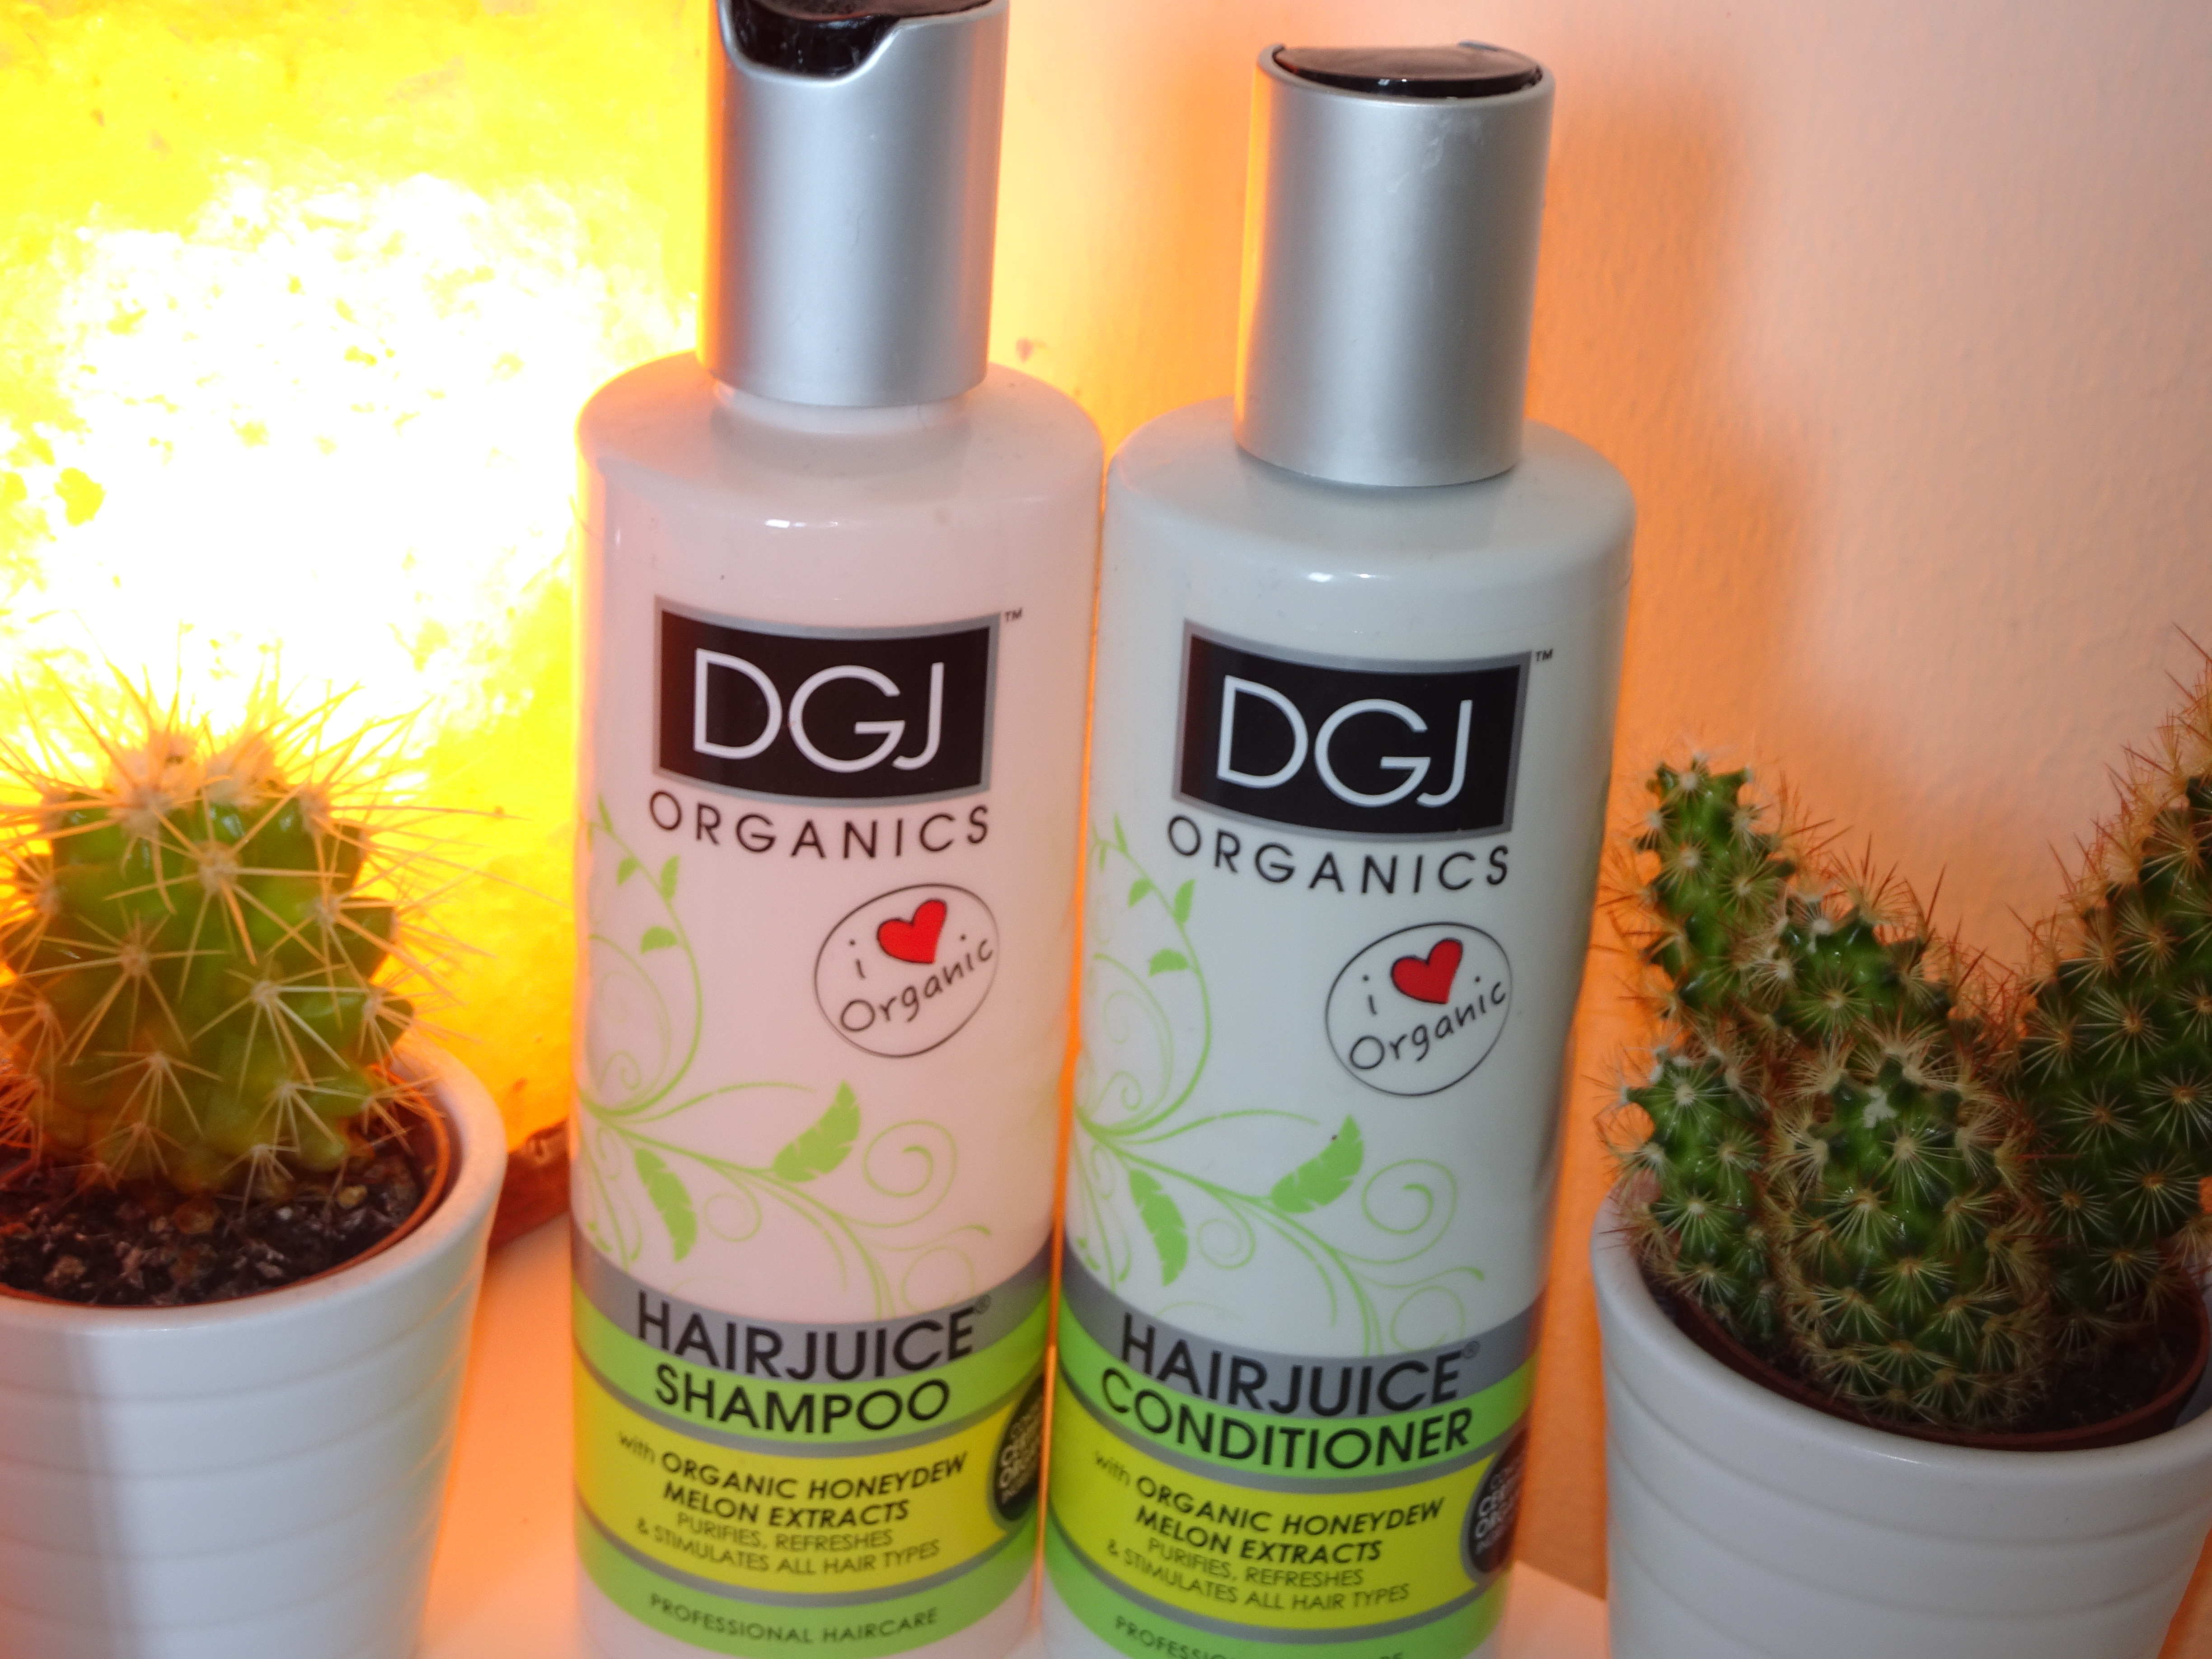 DGJ Organics HairJuice Shampoo and conditioner